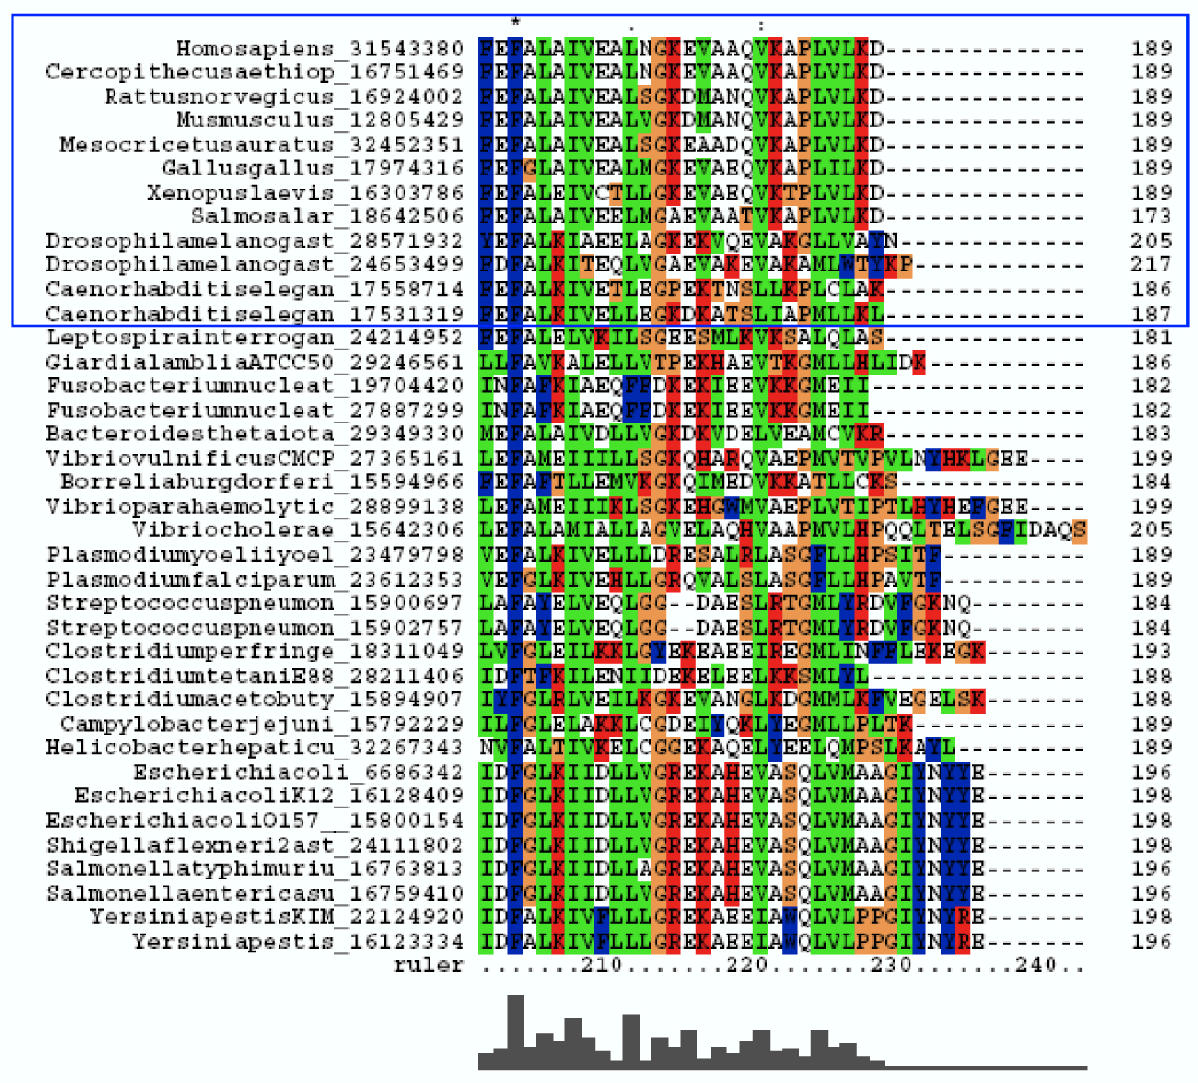 https://static-content.springer.com/image/art%3A10.1186%2F1471-2148-4-6/MediaObjects/12862_2003_Article_66_Fig4_HTML.jpg